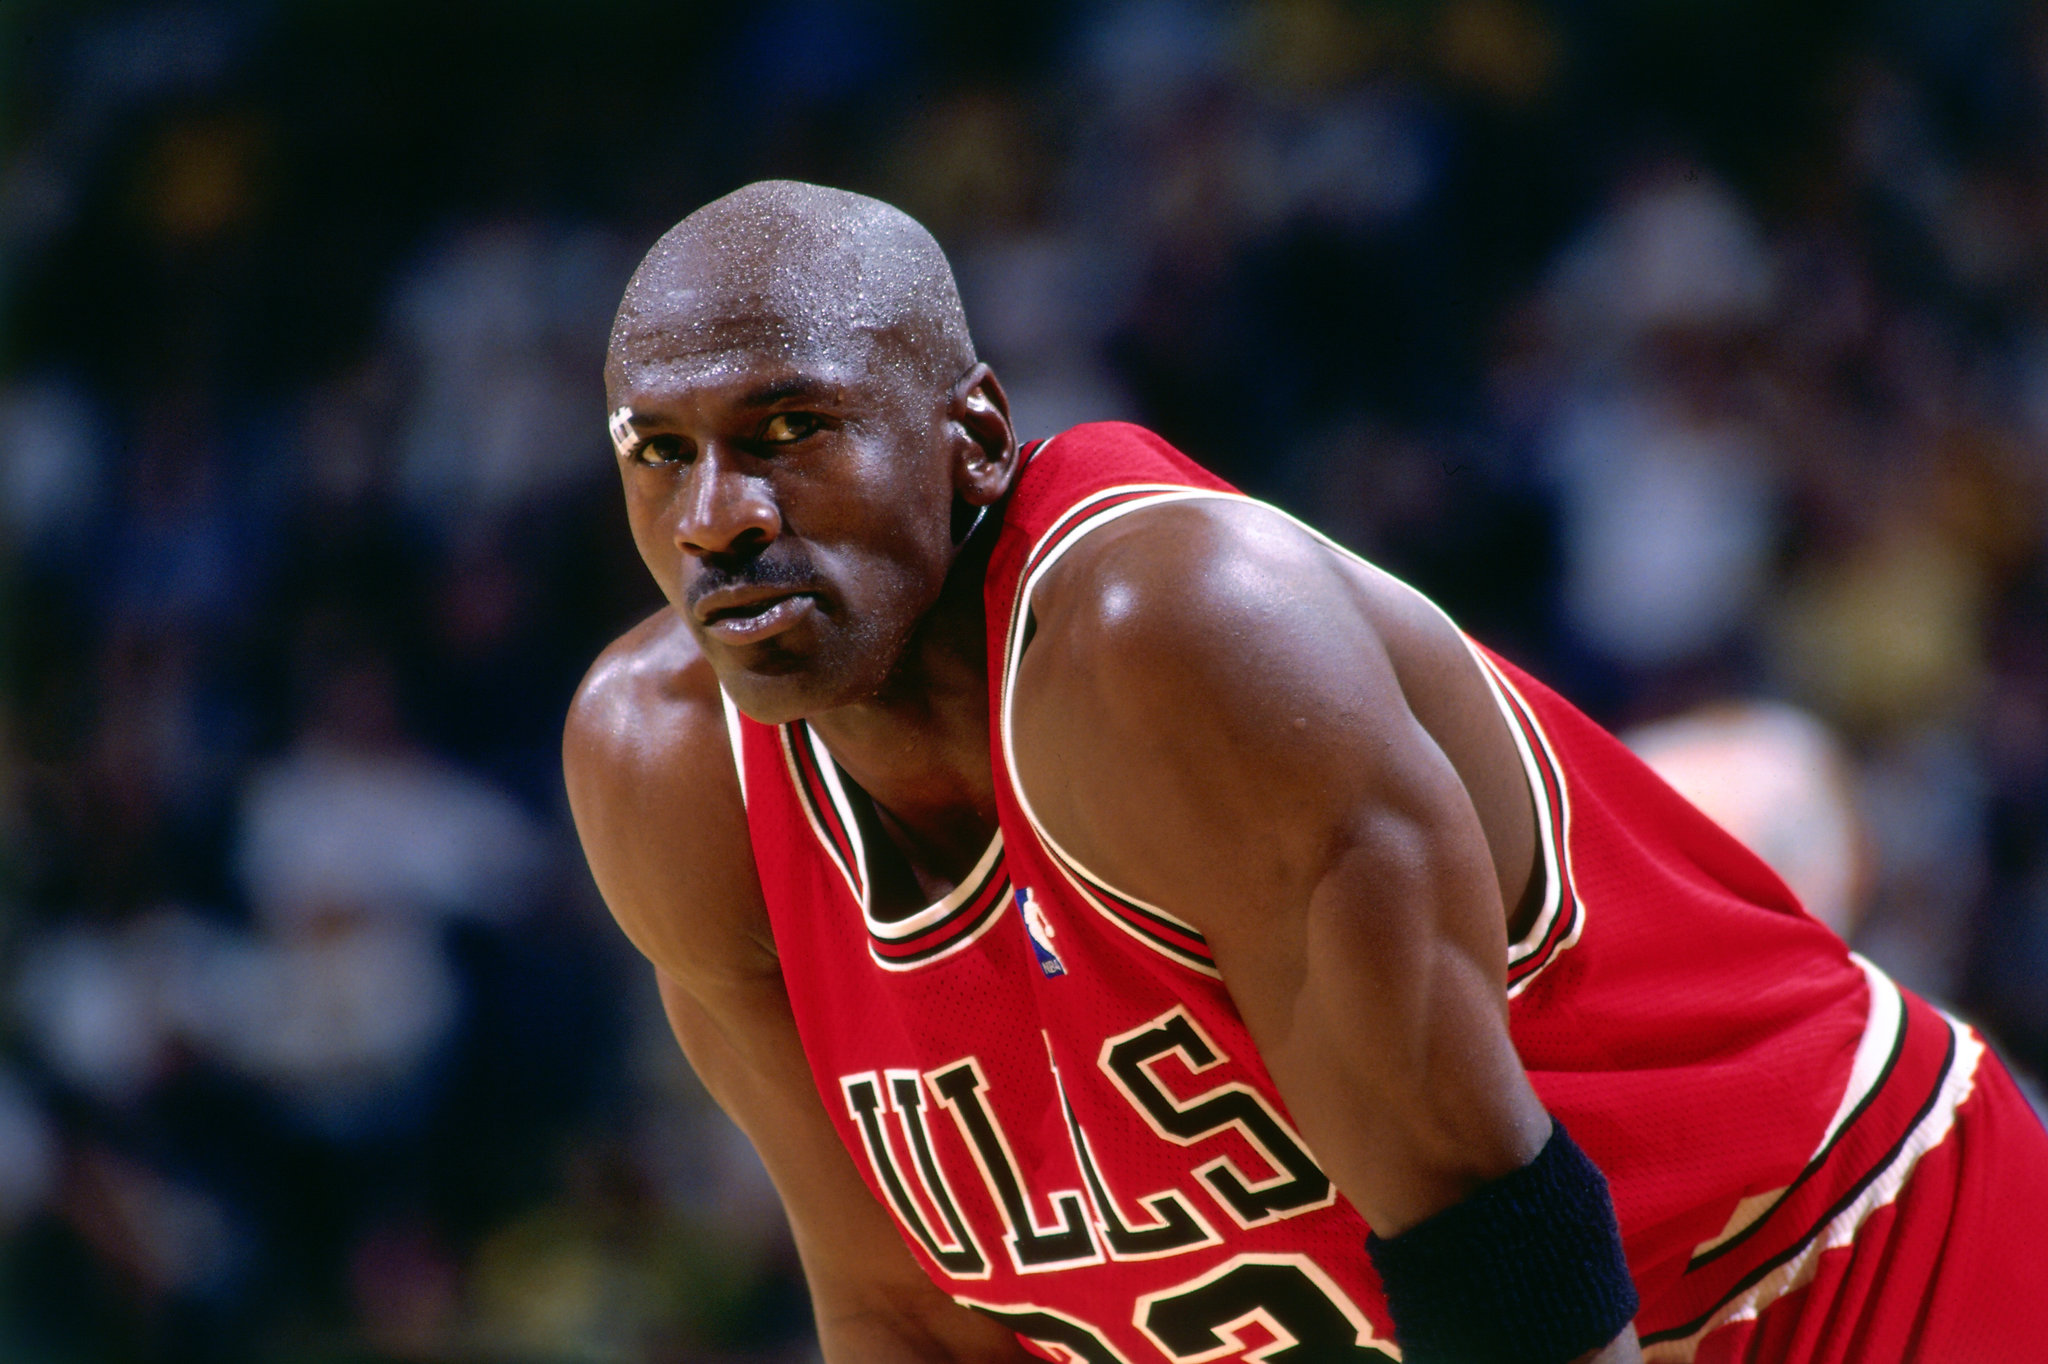 michael-jordan-and-the-jordan-brand-donated-1-million-to-morehouse-colleges-journalism-and-sports-program